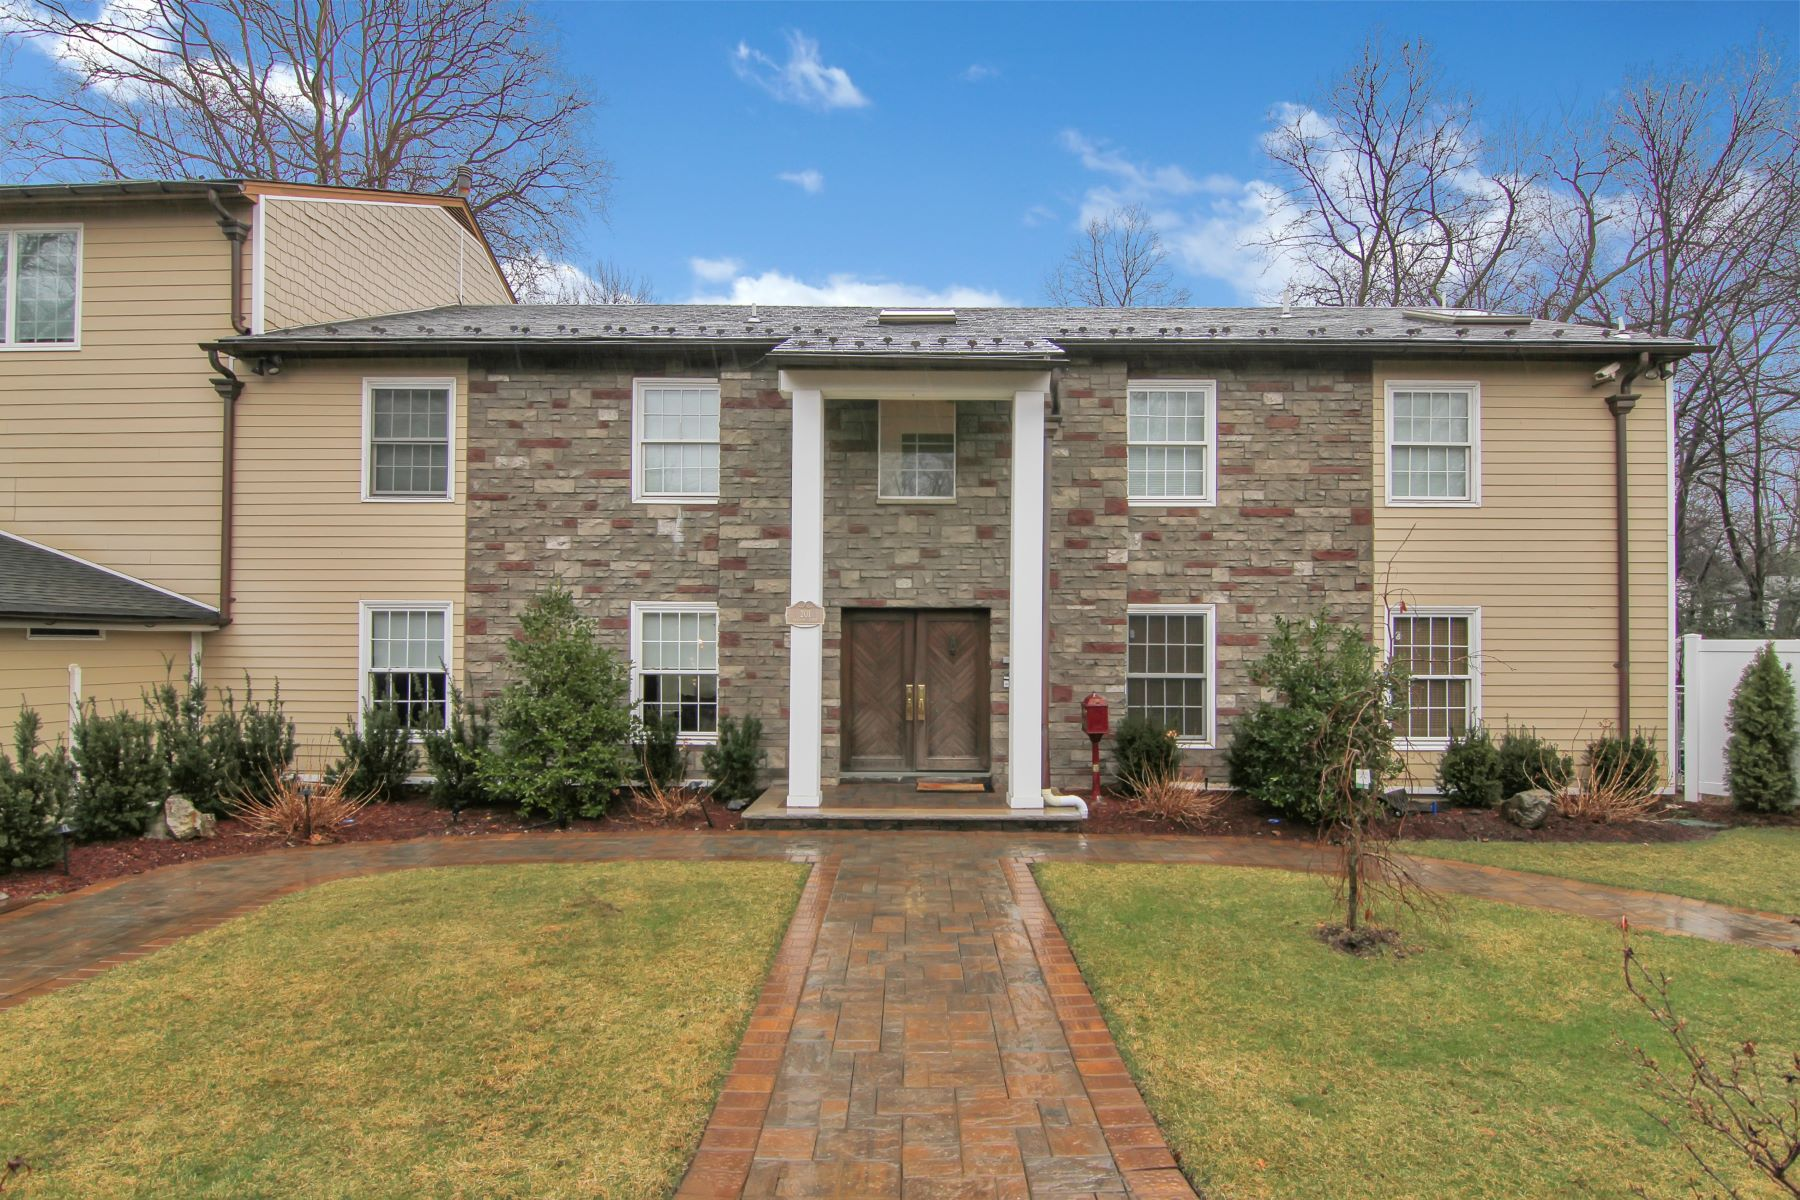 Single Family Home for Sale at Stunning Center Hall Colonial 201 Allison Court Englewood, New Jersey 0763 United States